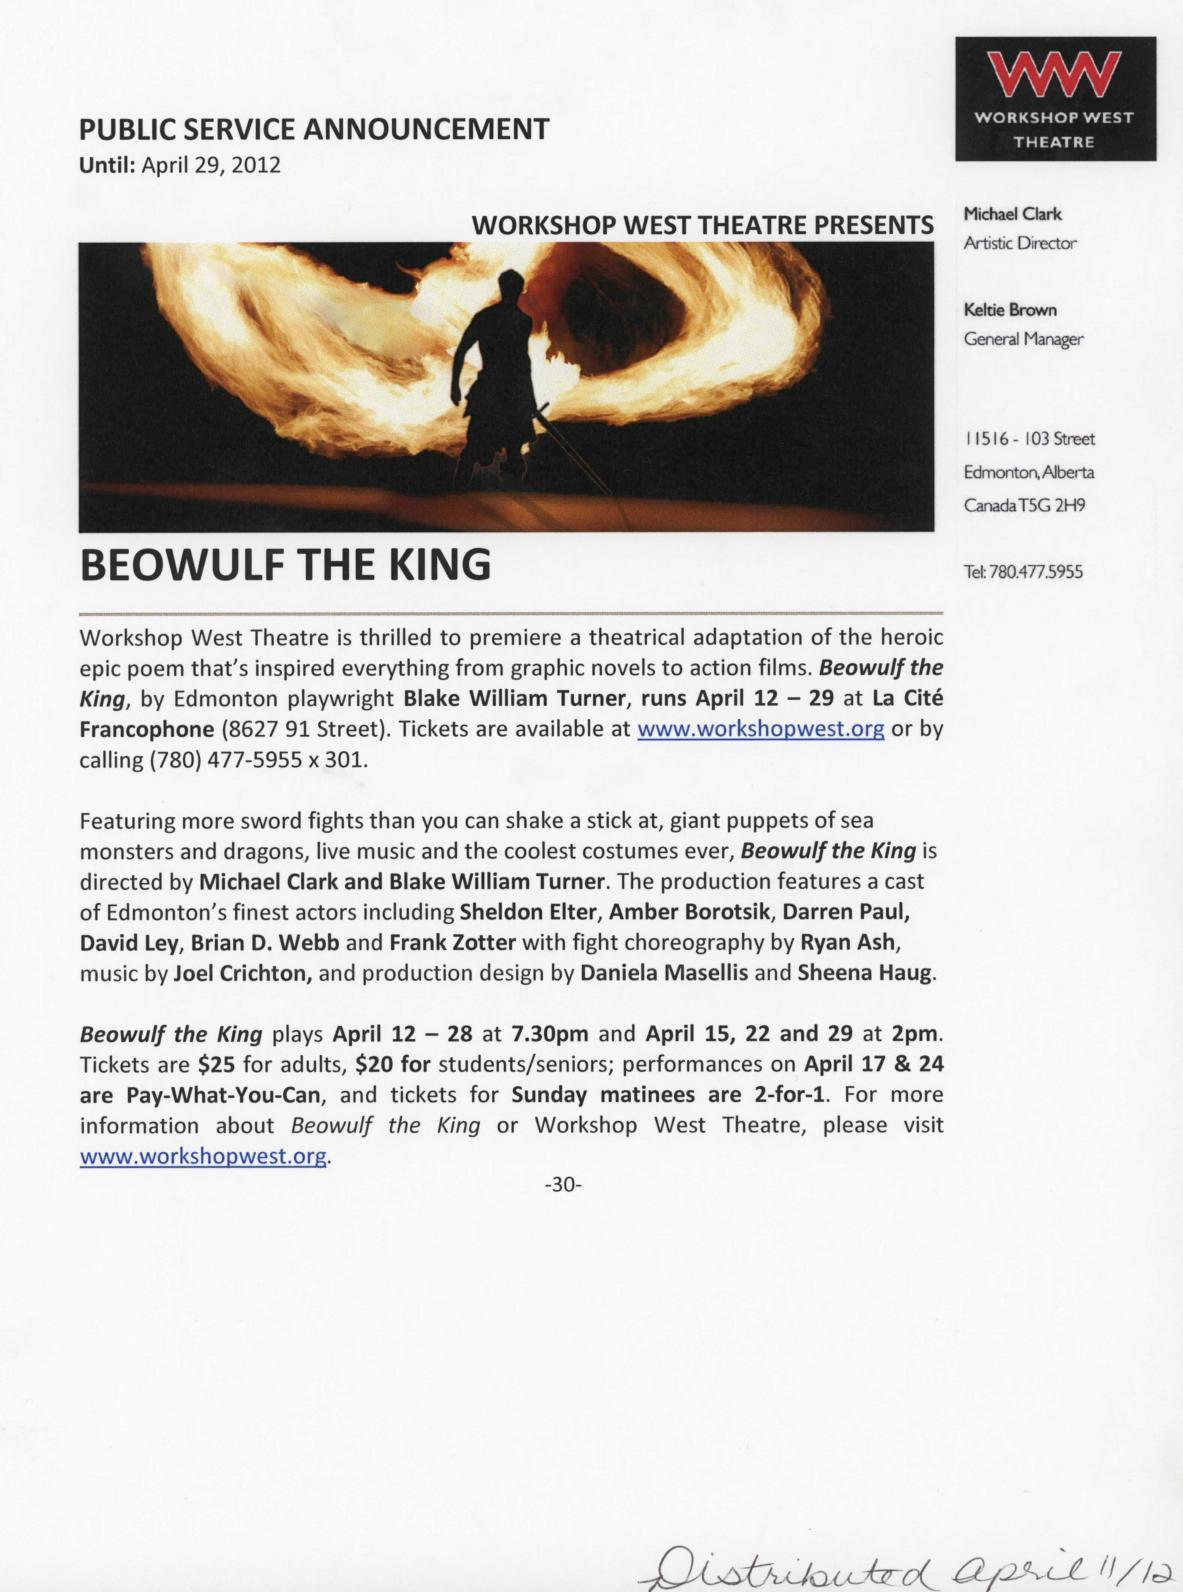 Beawulf The King (2012)- Production Information 1_PDF-page-001.jpg